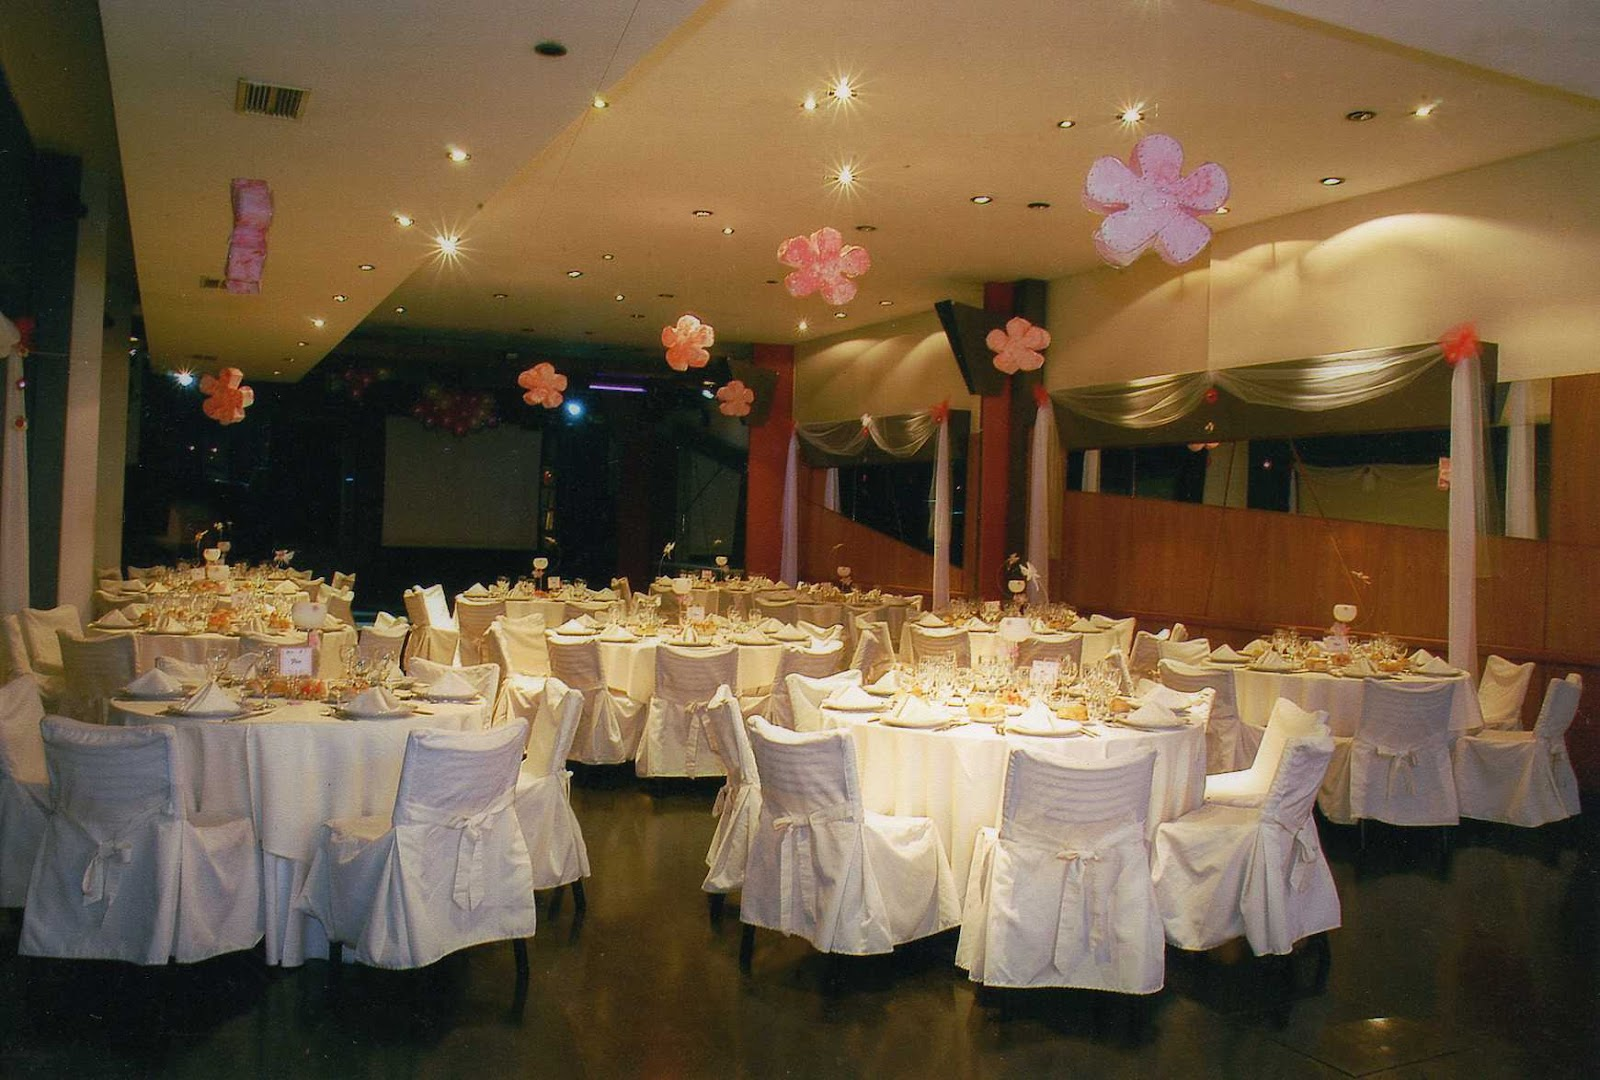 Faar eventos for Decoracion de salones para eventos